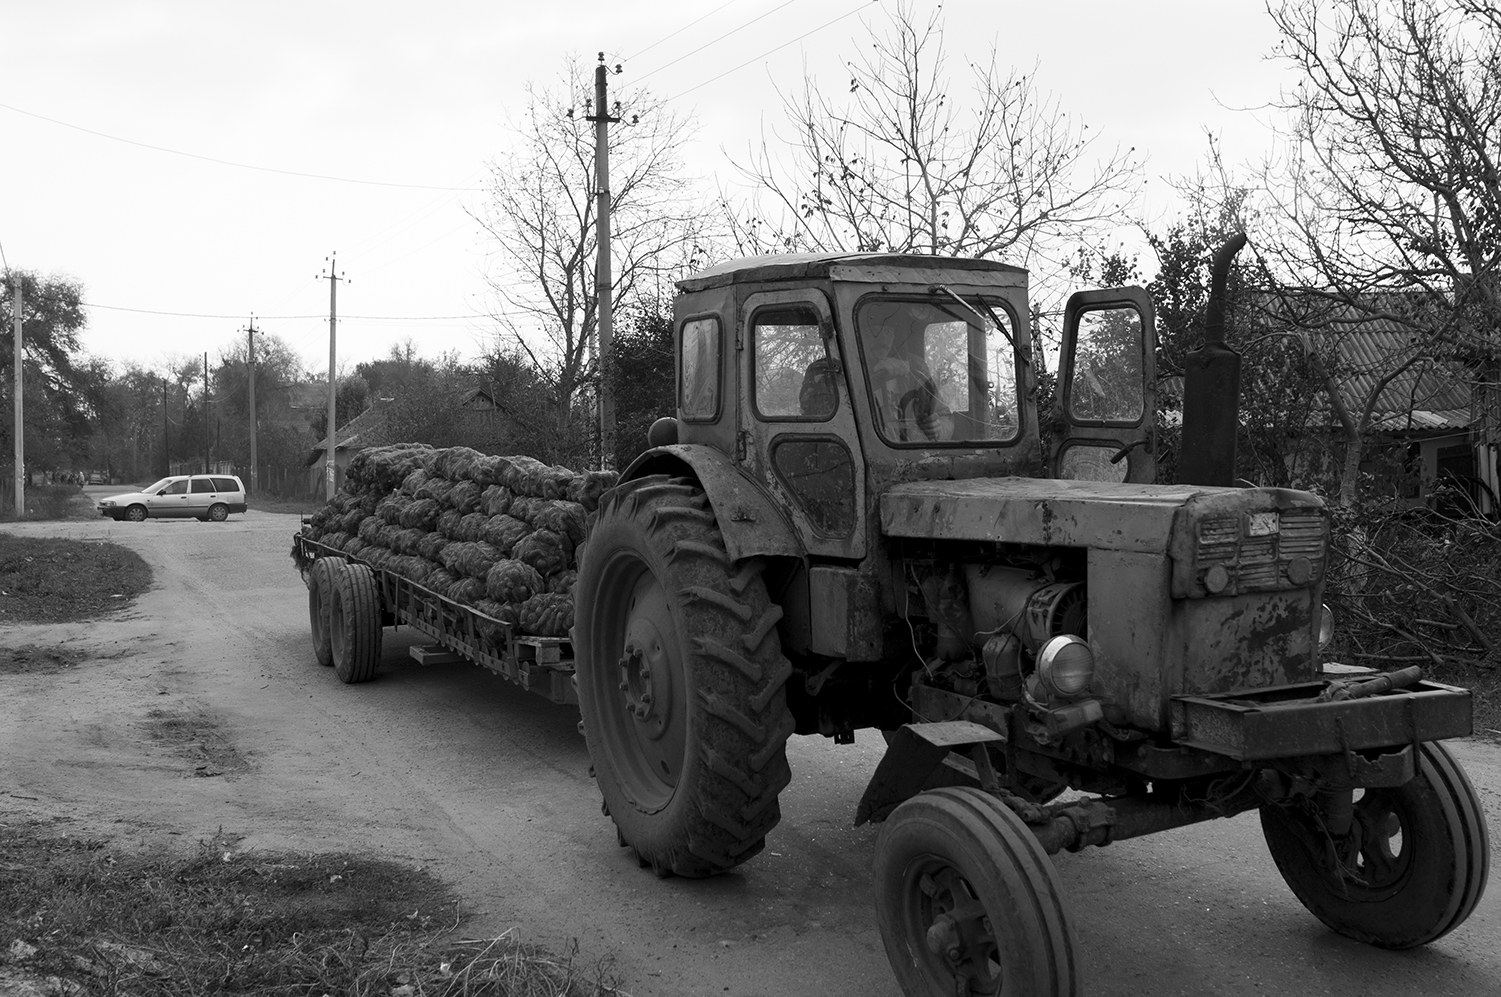 Tractor transporting carrots acrossParcani